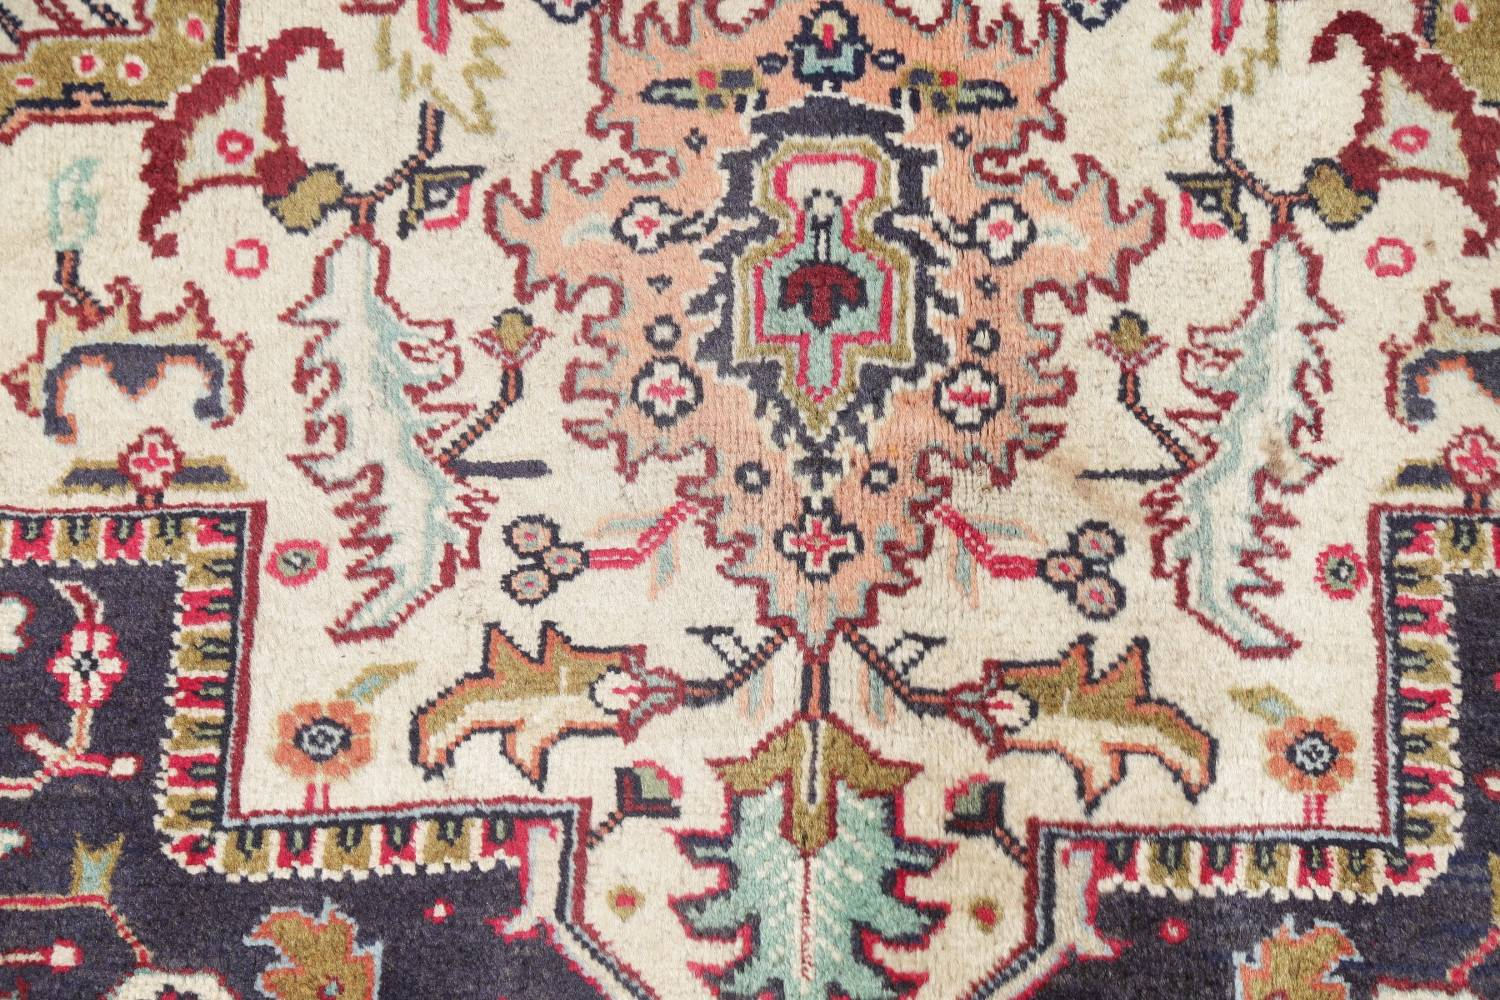 One-of-a-Kind Antique Heriz Serapi Persian Hand-Knotted 7x9 Wool Area Rug image 7